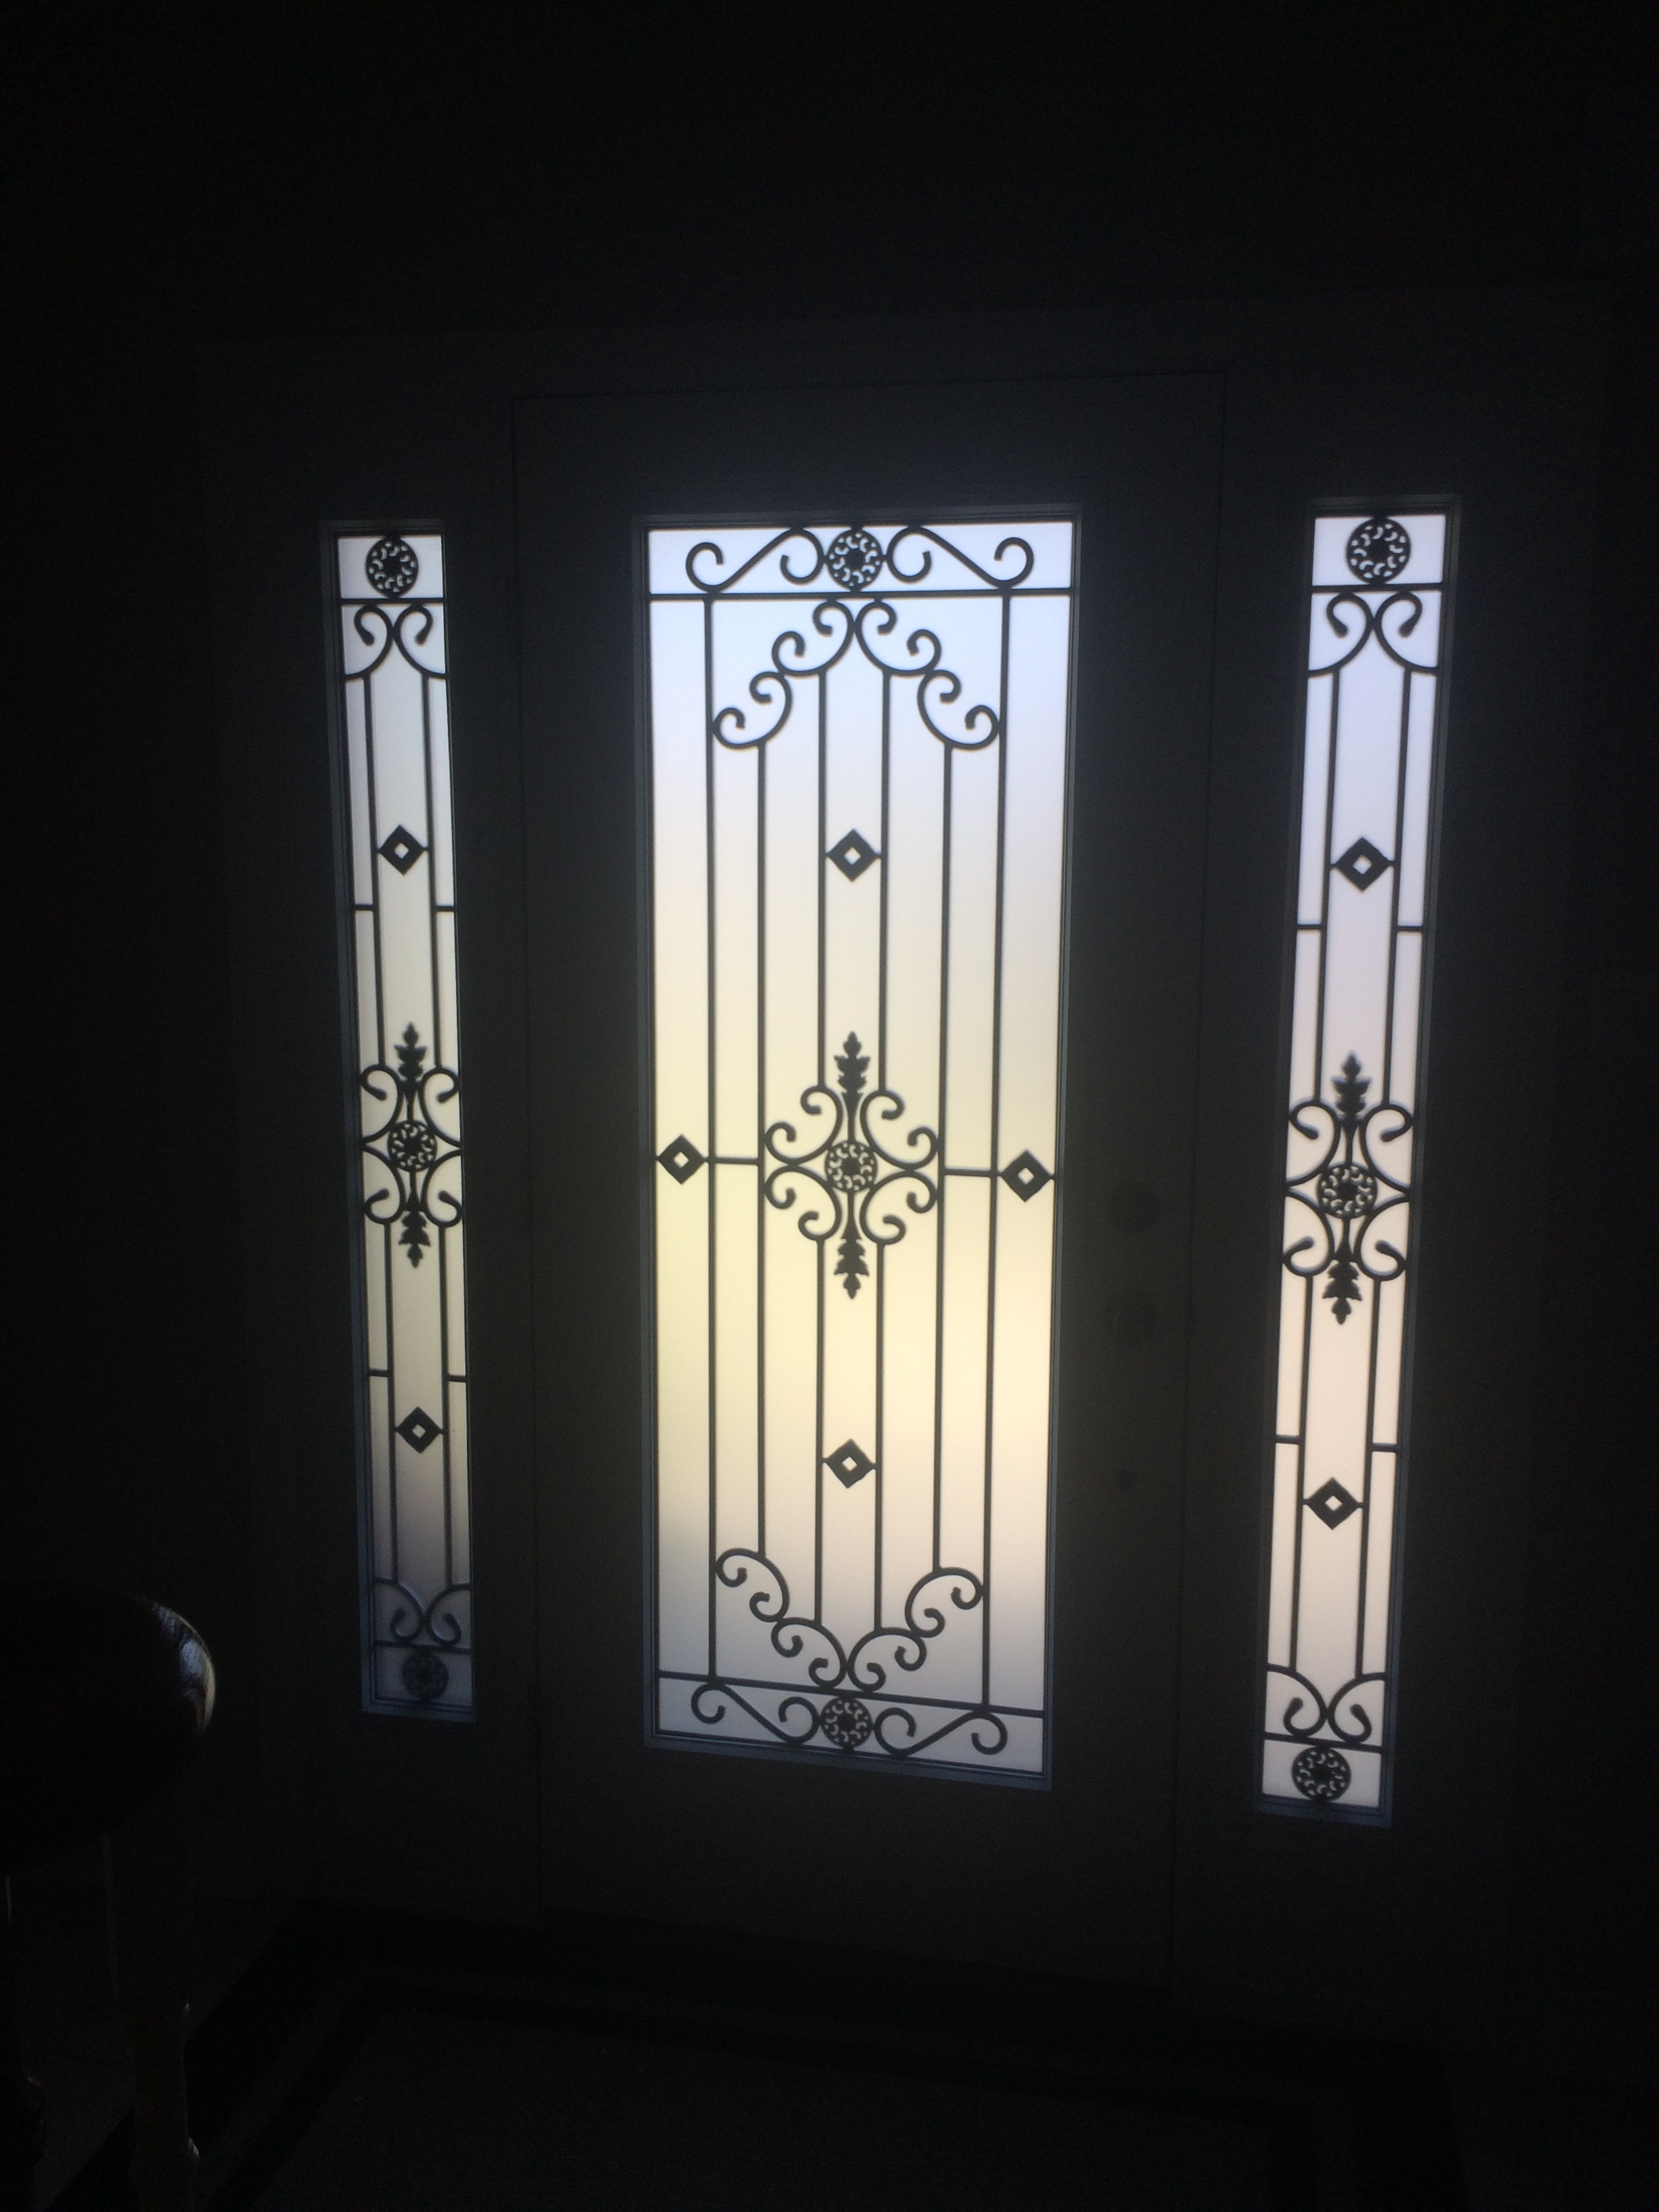 Dalmont-wrought-iron-glass-door-Inserts-Hamilton-Ontario